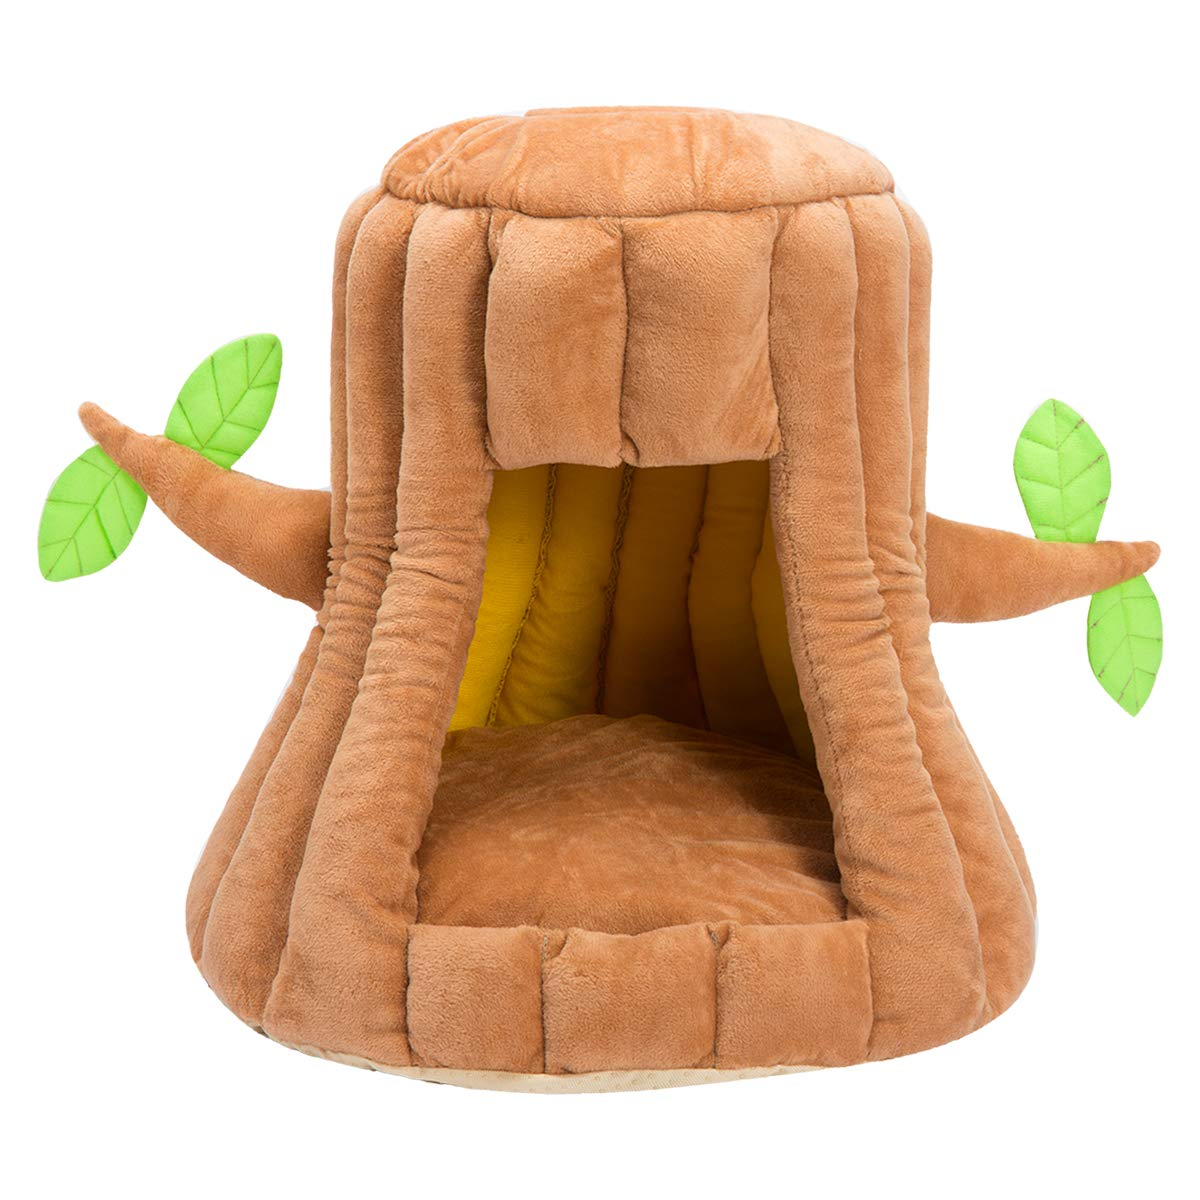 Hollypet Cozy Pet Bed Warm Cave Nest Sleeping Bed Tree Shape Puppy House for Cats and Small Dogs by Hollypet (Image #1)